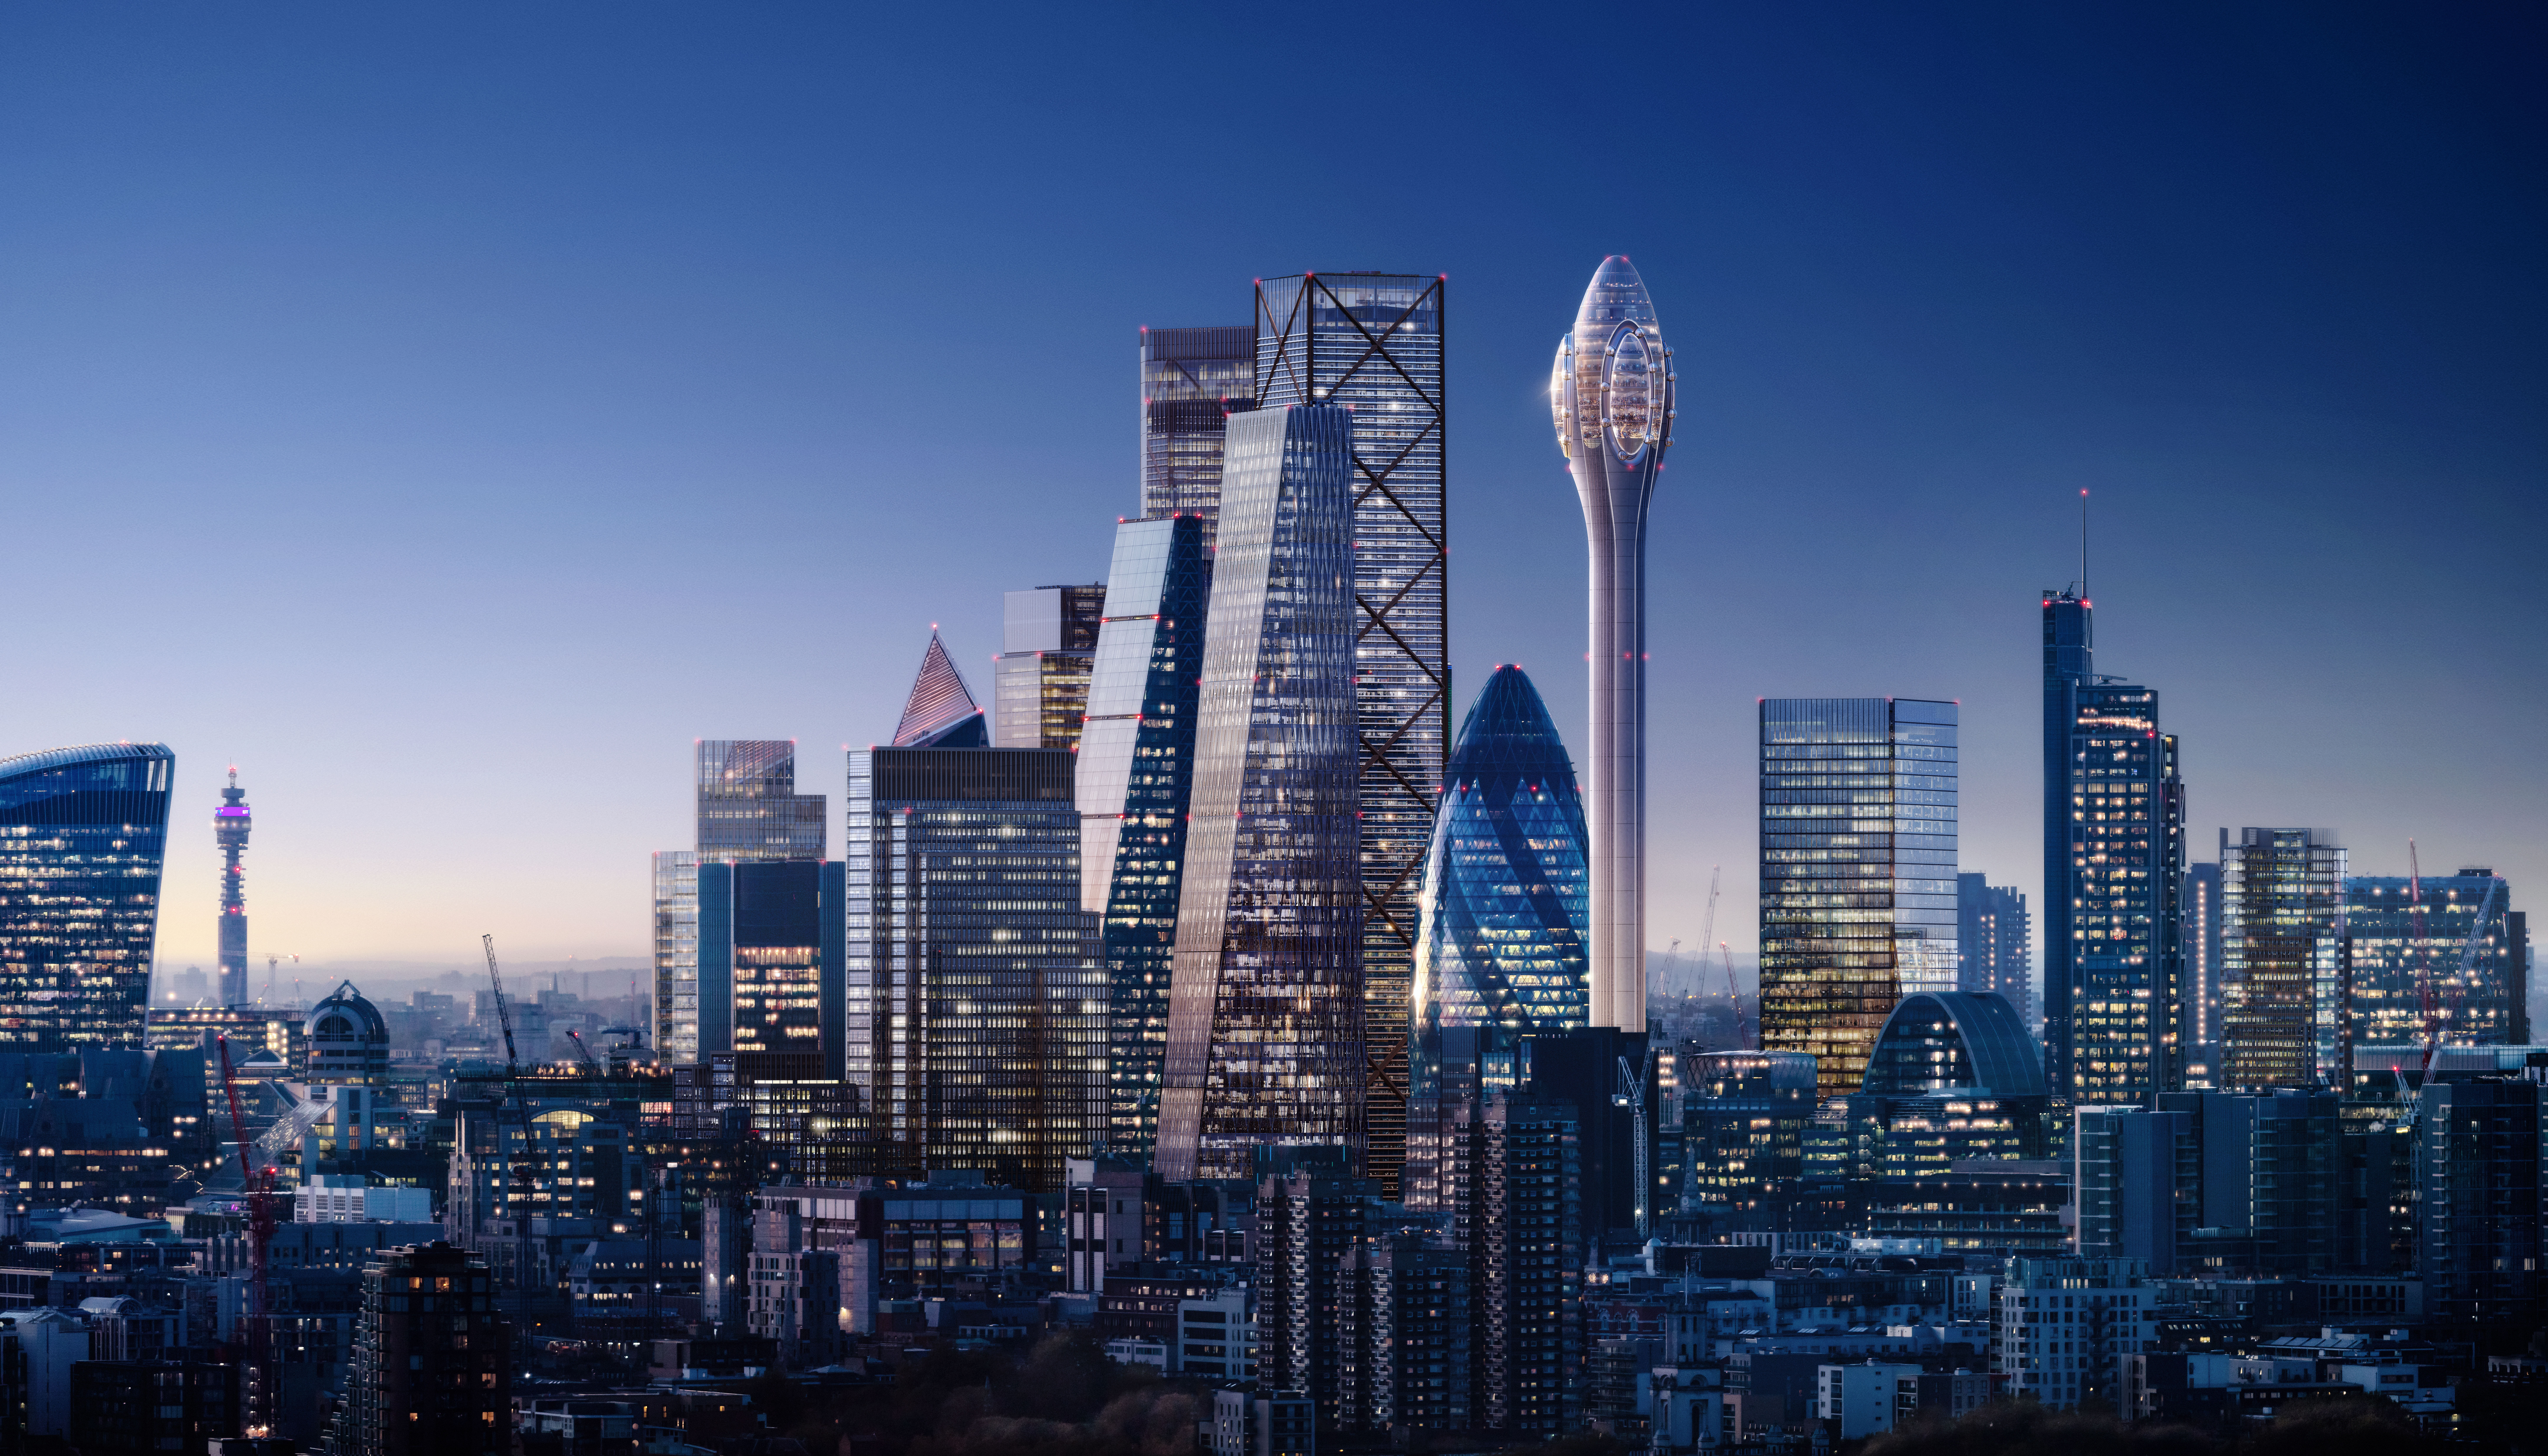 Tulip tower: Developers will meet to consider appeal after Khan halts project